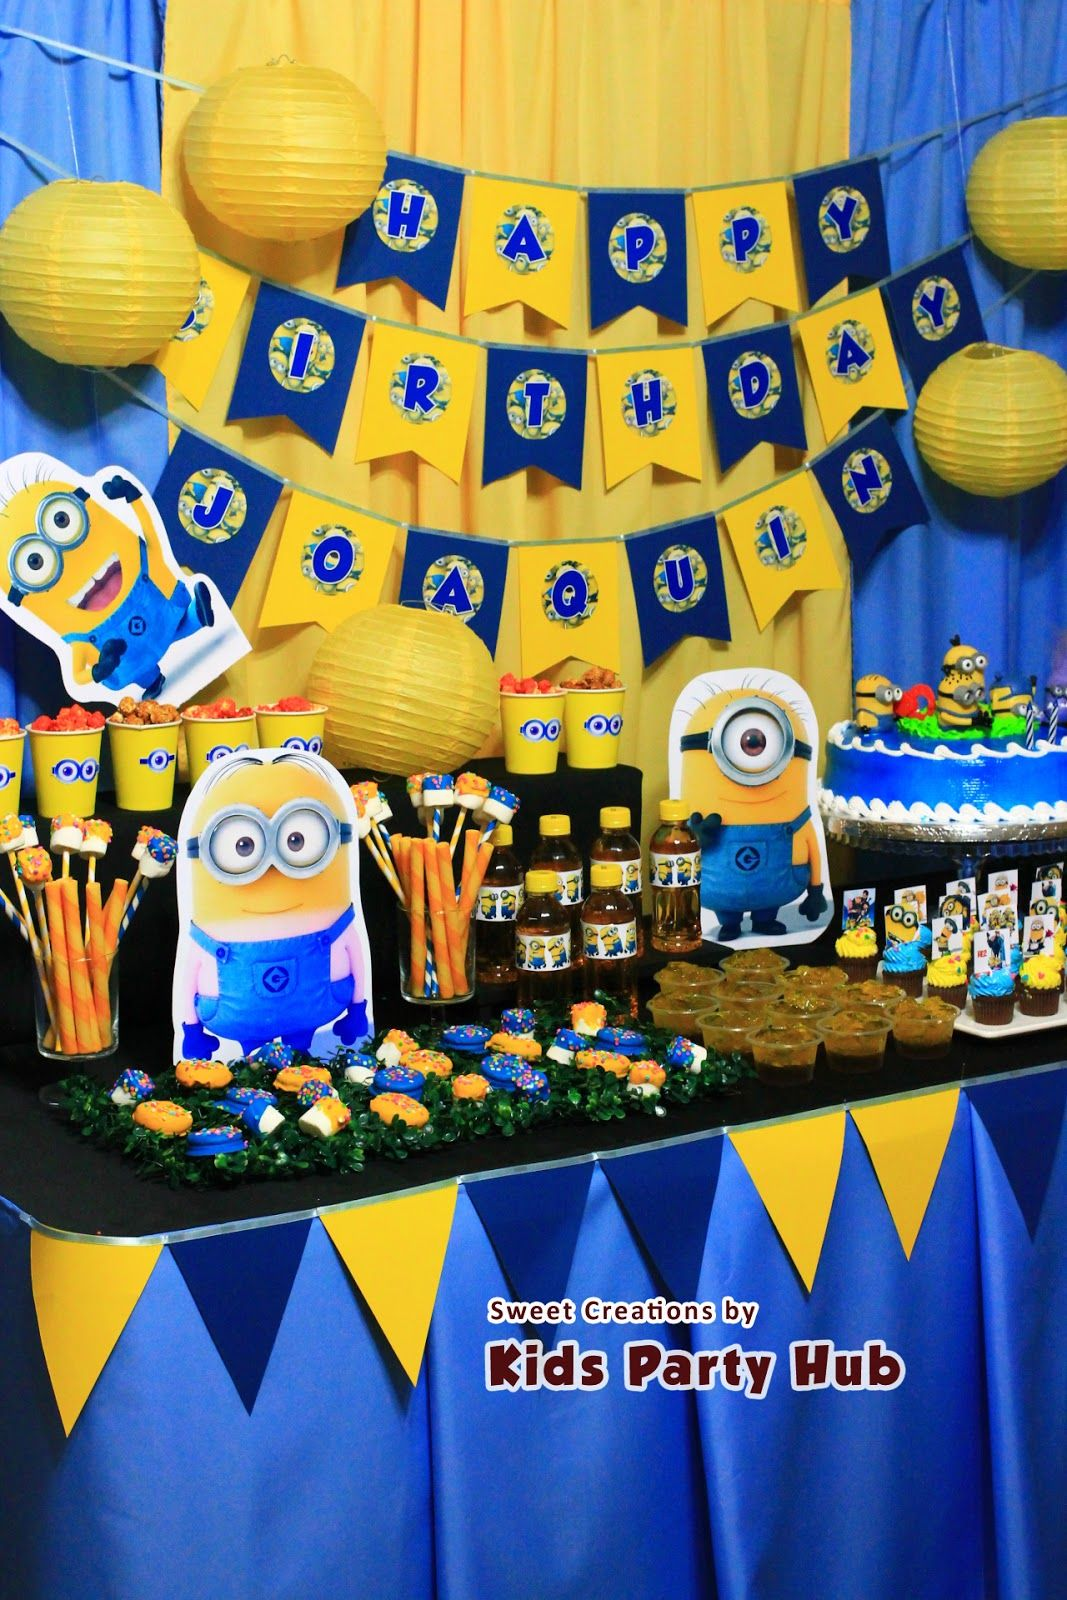 Pin By Haleigh Mershon On Healthy Food Minion Birthday Party Minion Party Minion Party Theme